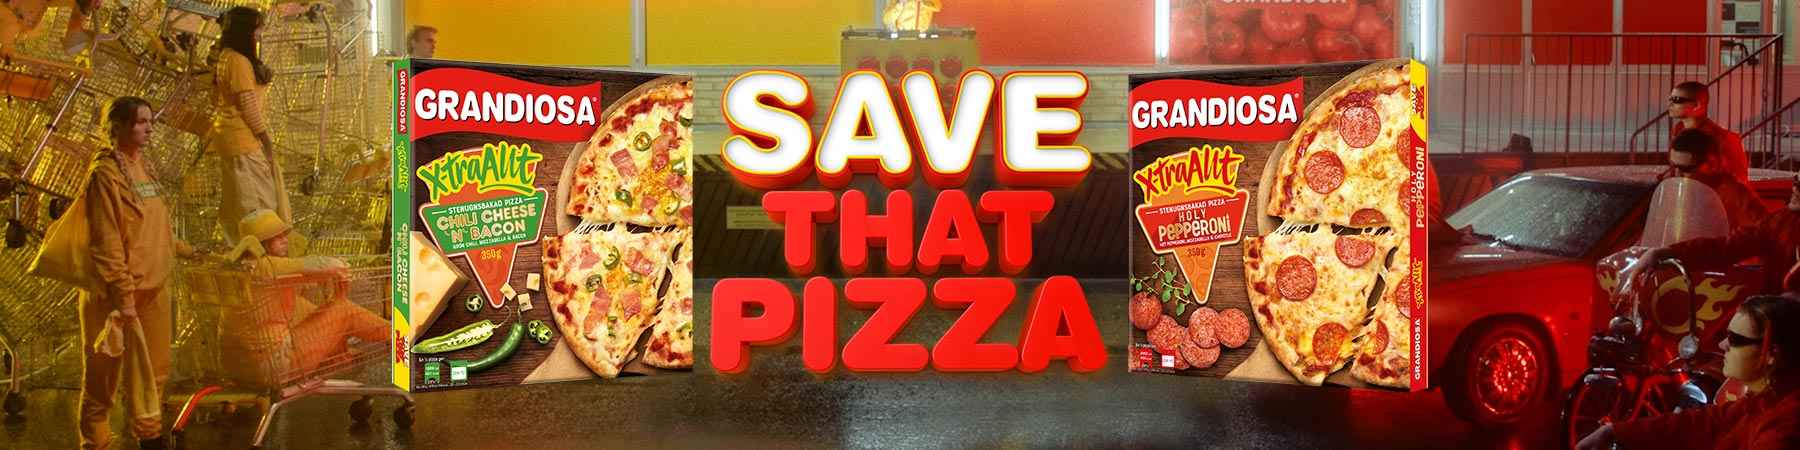 Save_That_Pizza_Grandiosa_Banner